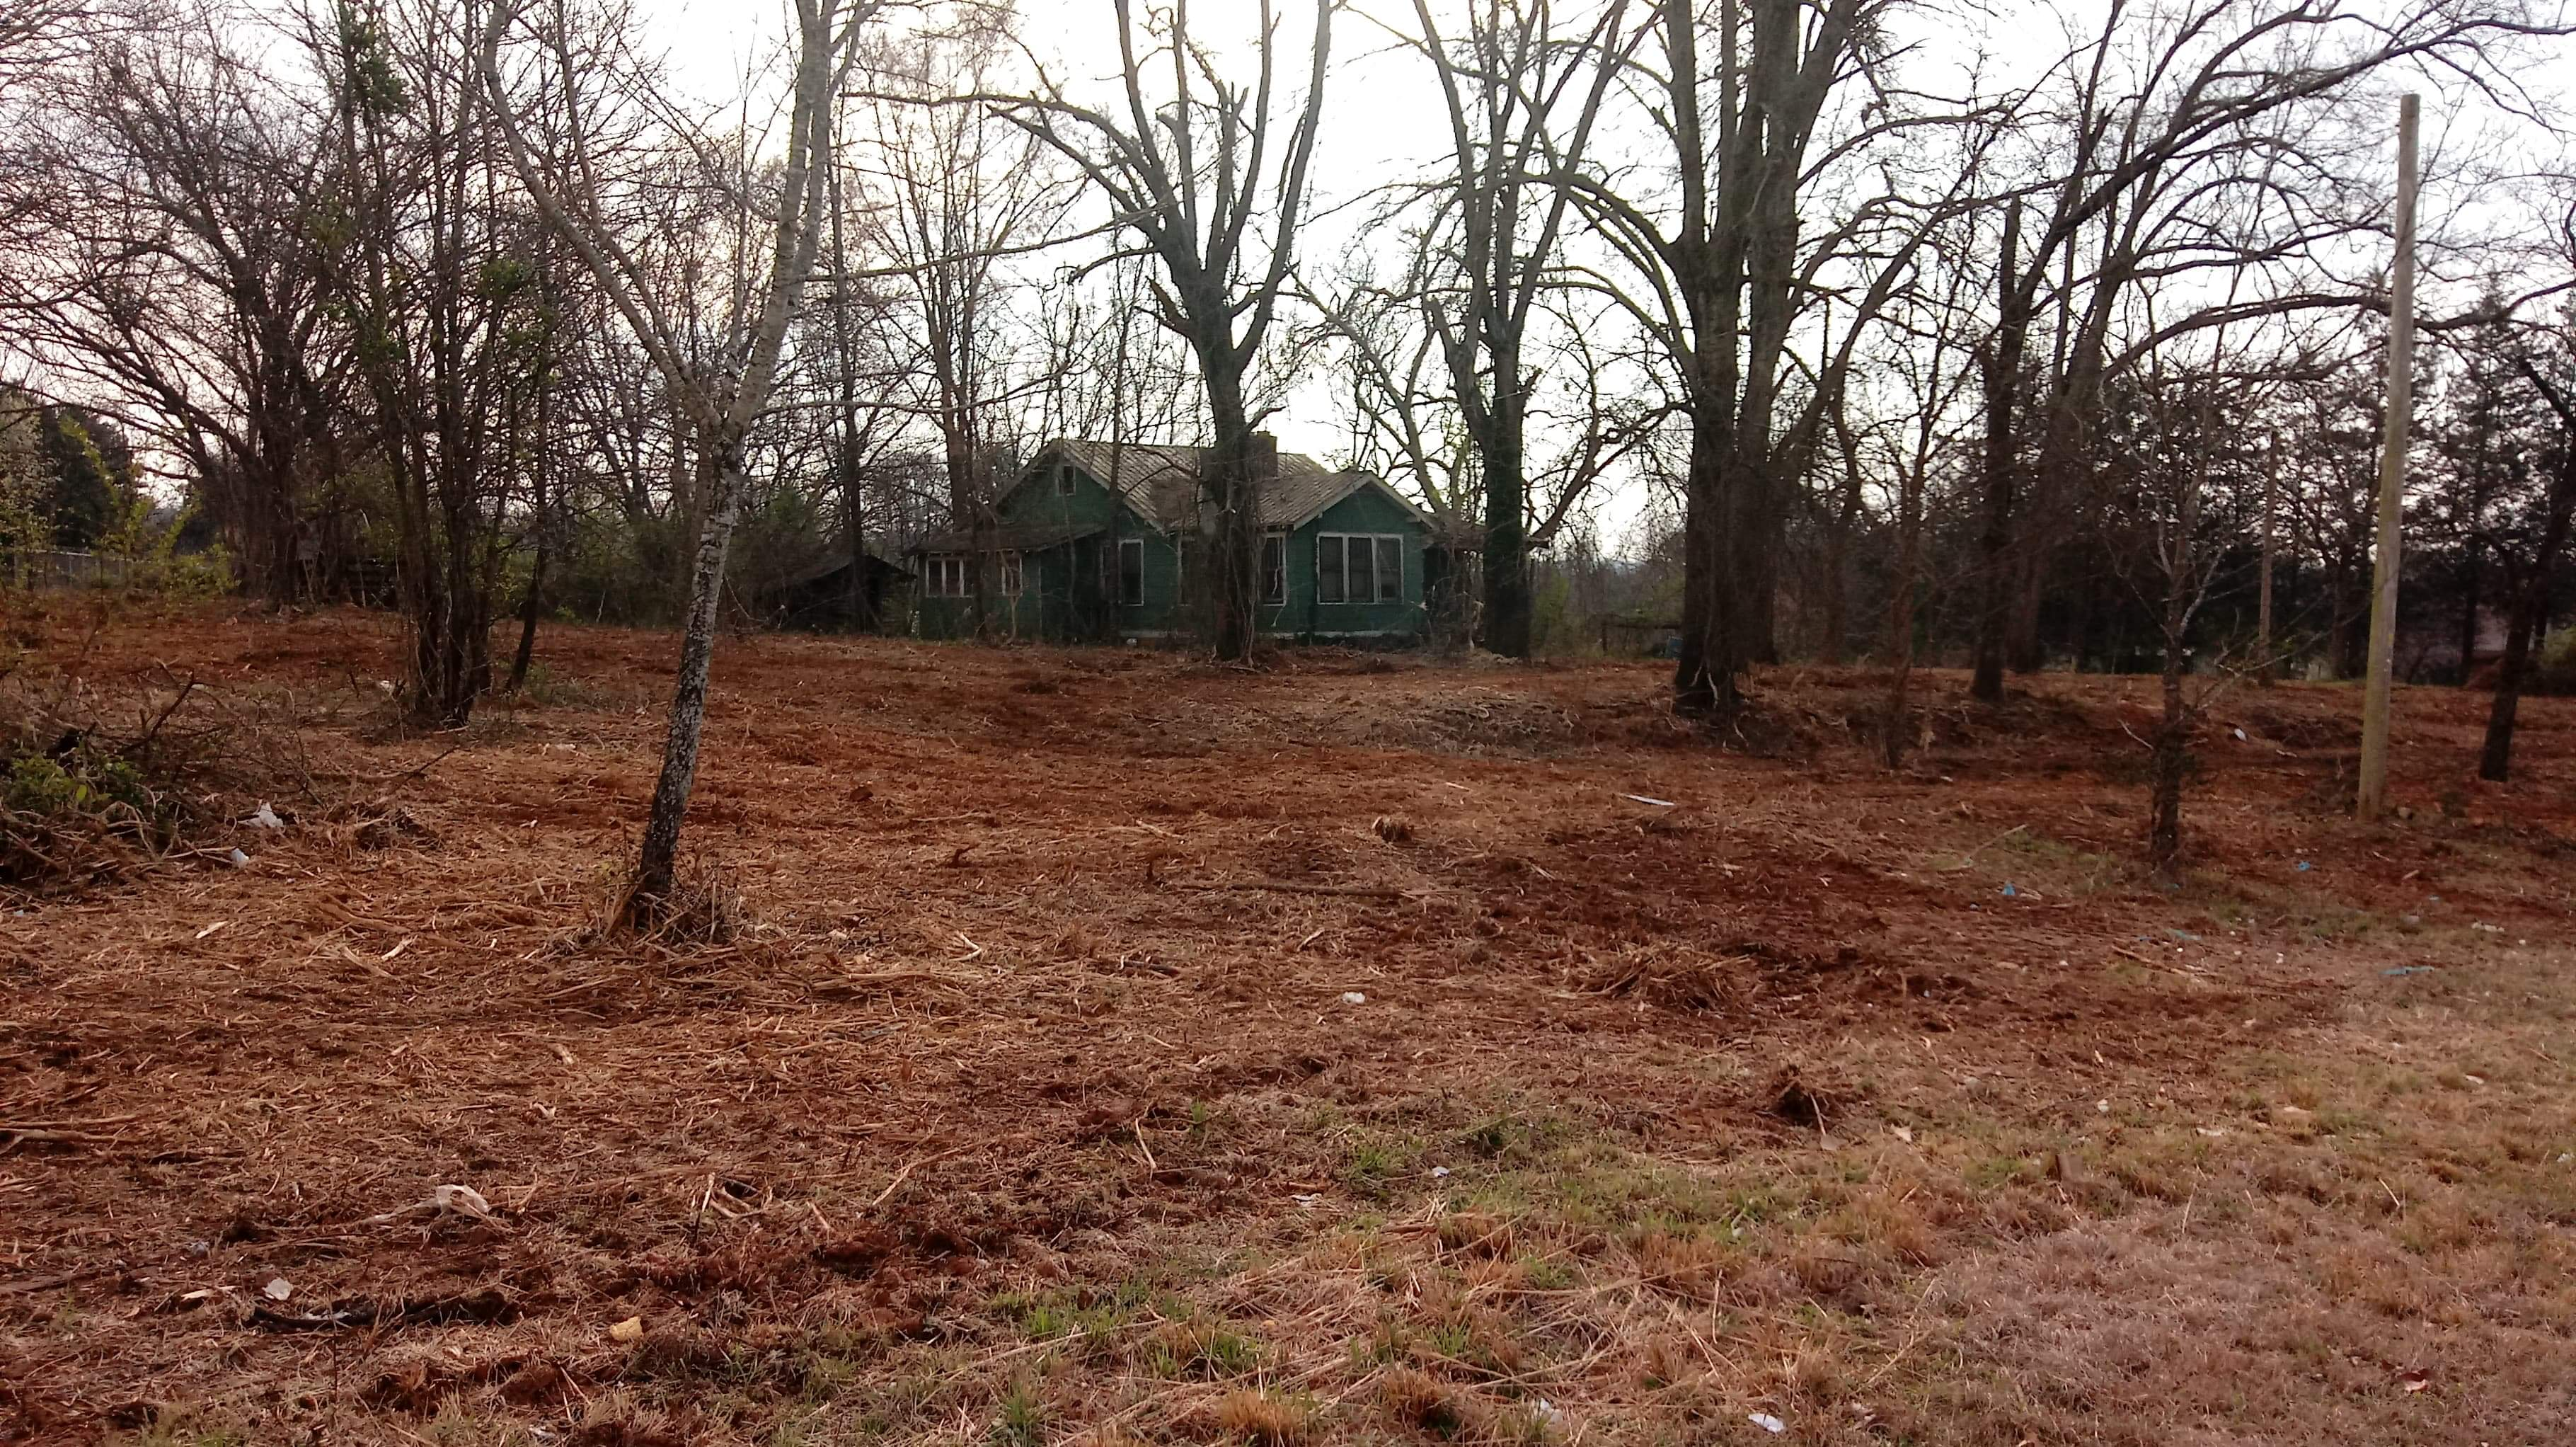 Forestry Mulching used to clear to hidden house